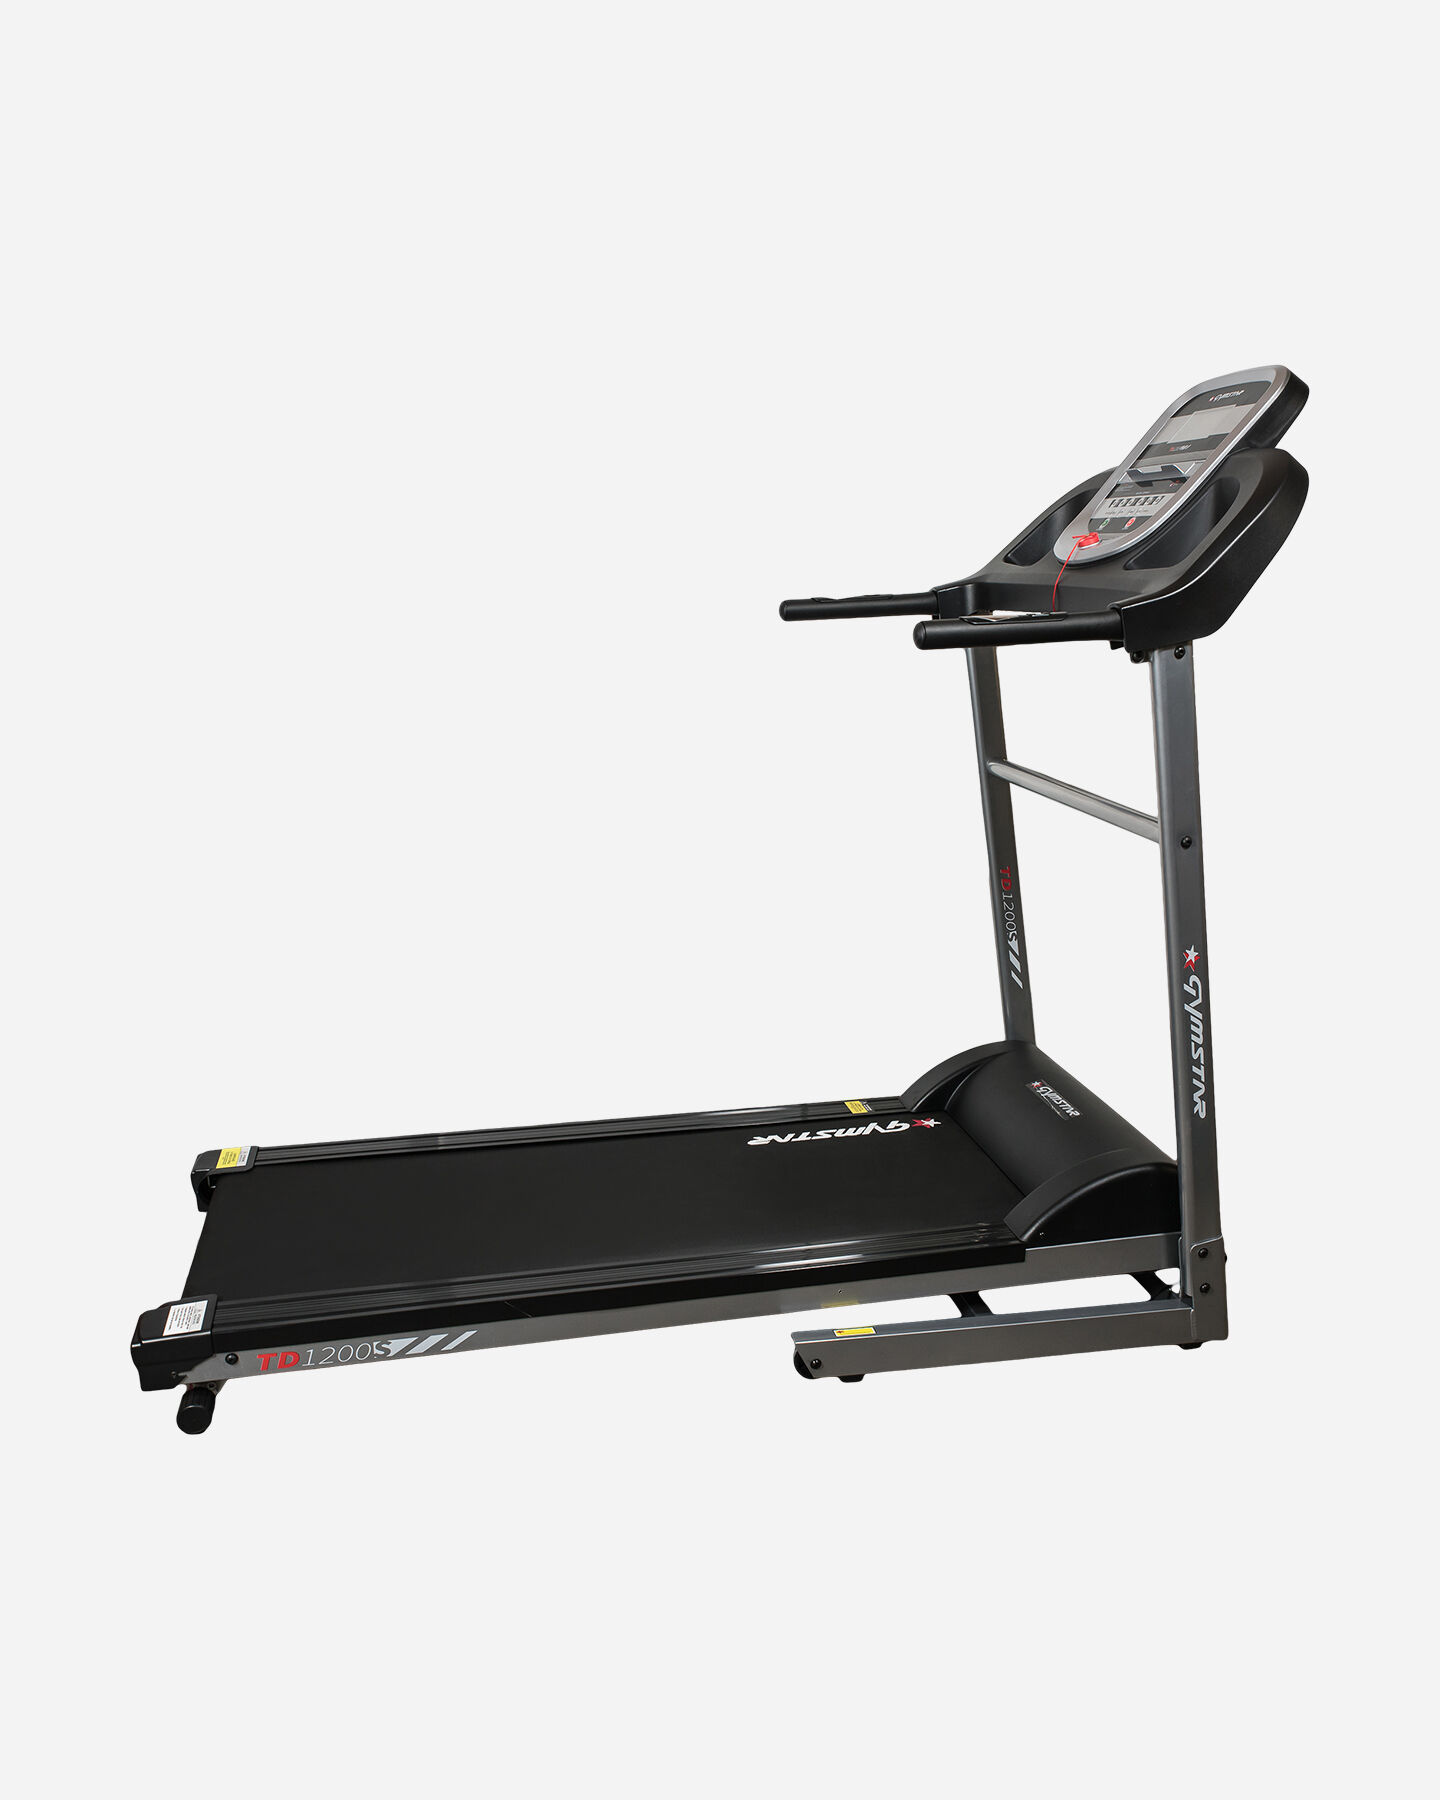 Tapis roulant CARNIELLI GYMSTAR TD 1200S S4031139|1|UNI scatto 0